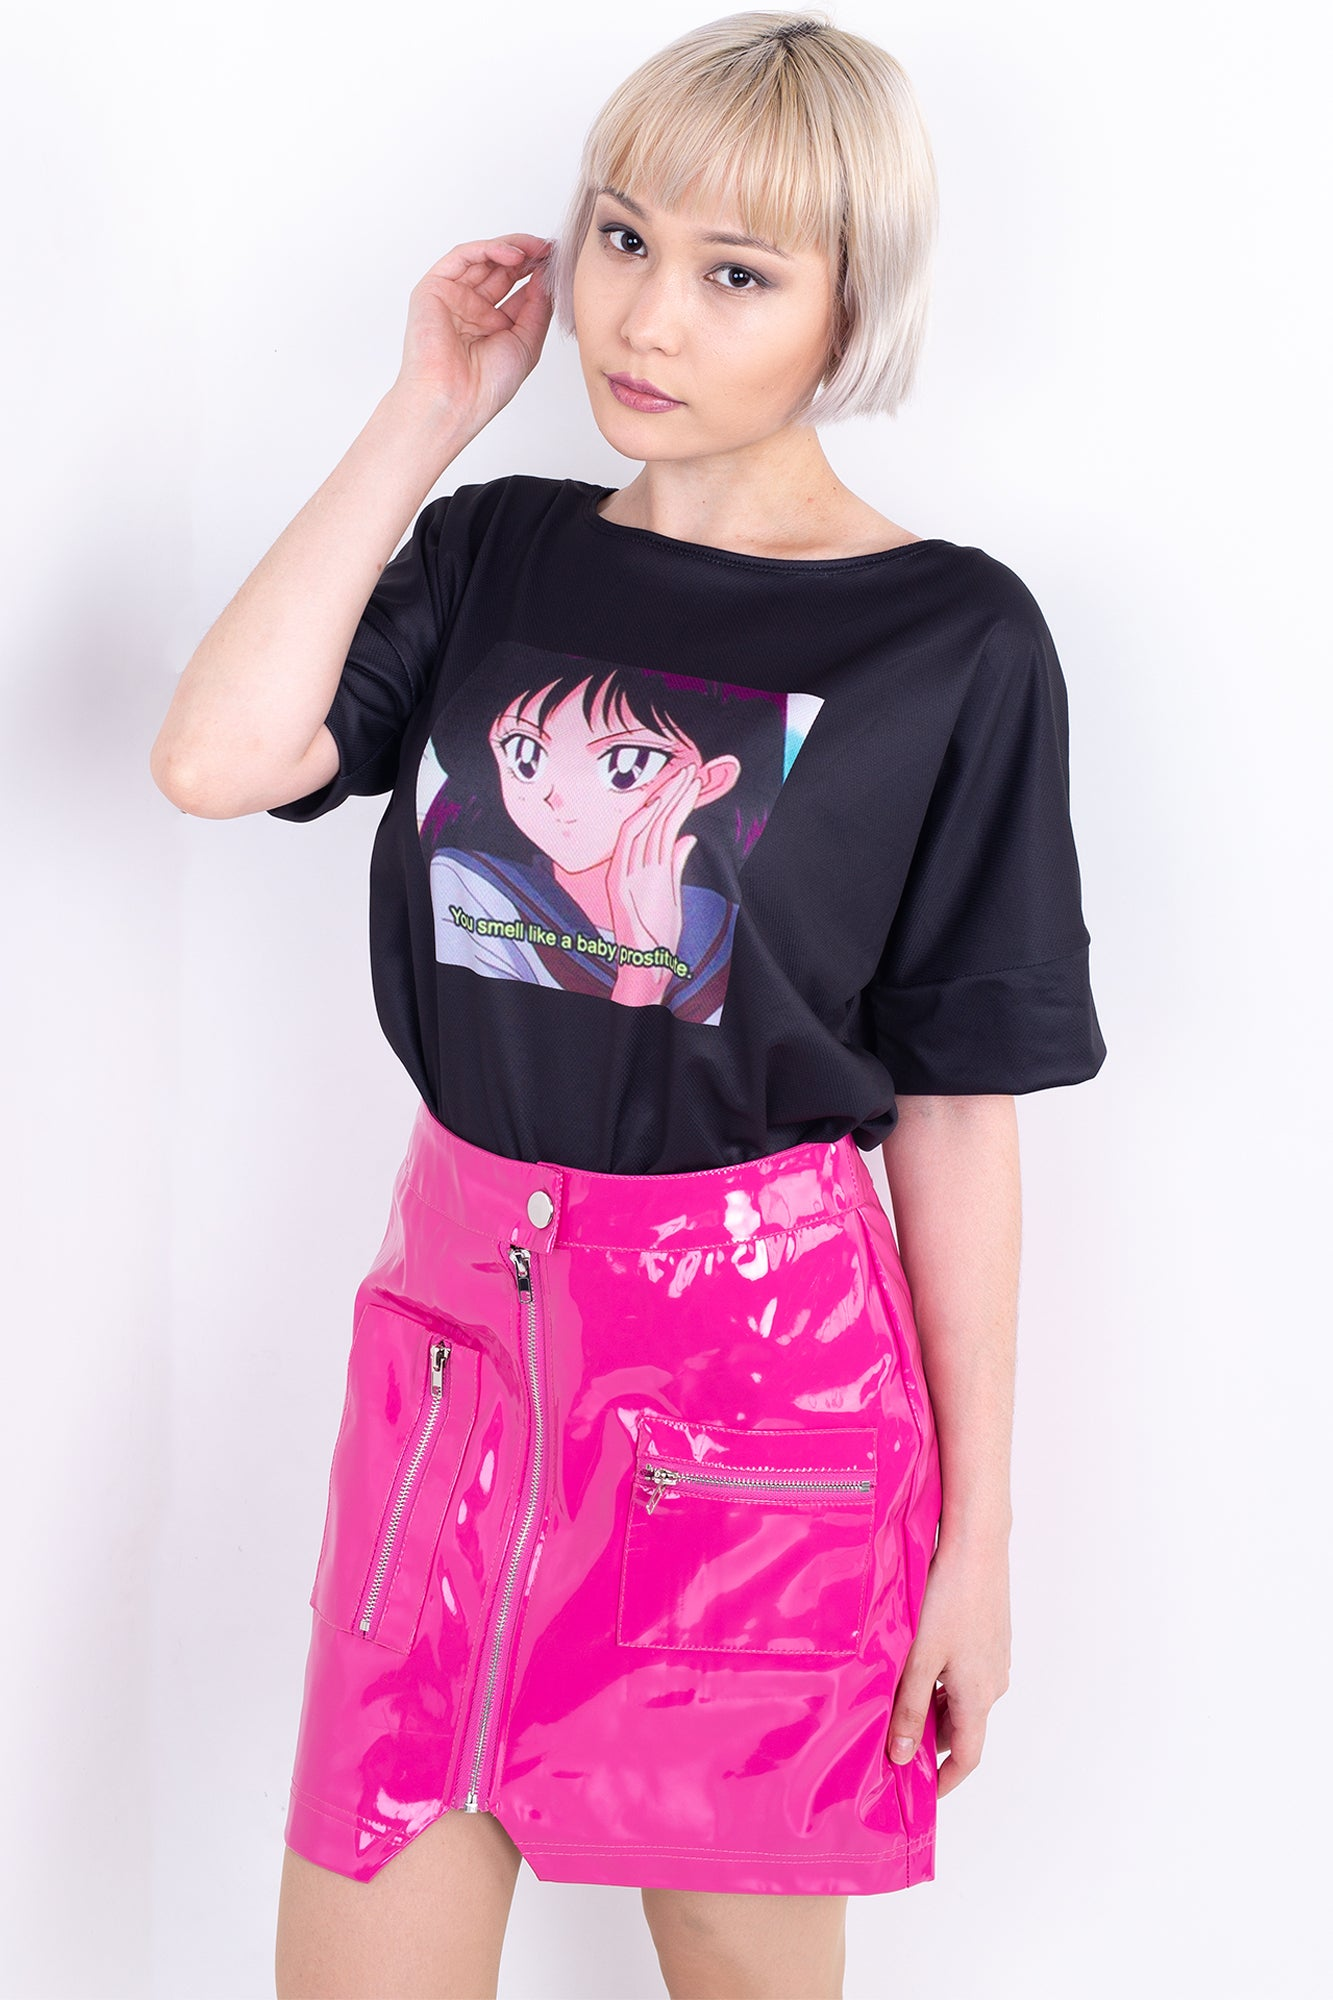 Sailor Sassy Bitch Triple Threat Tee